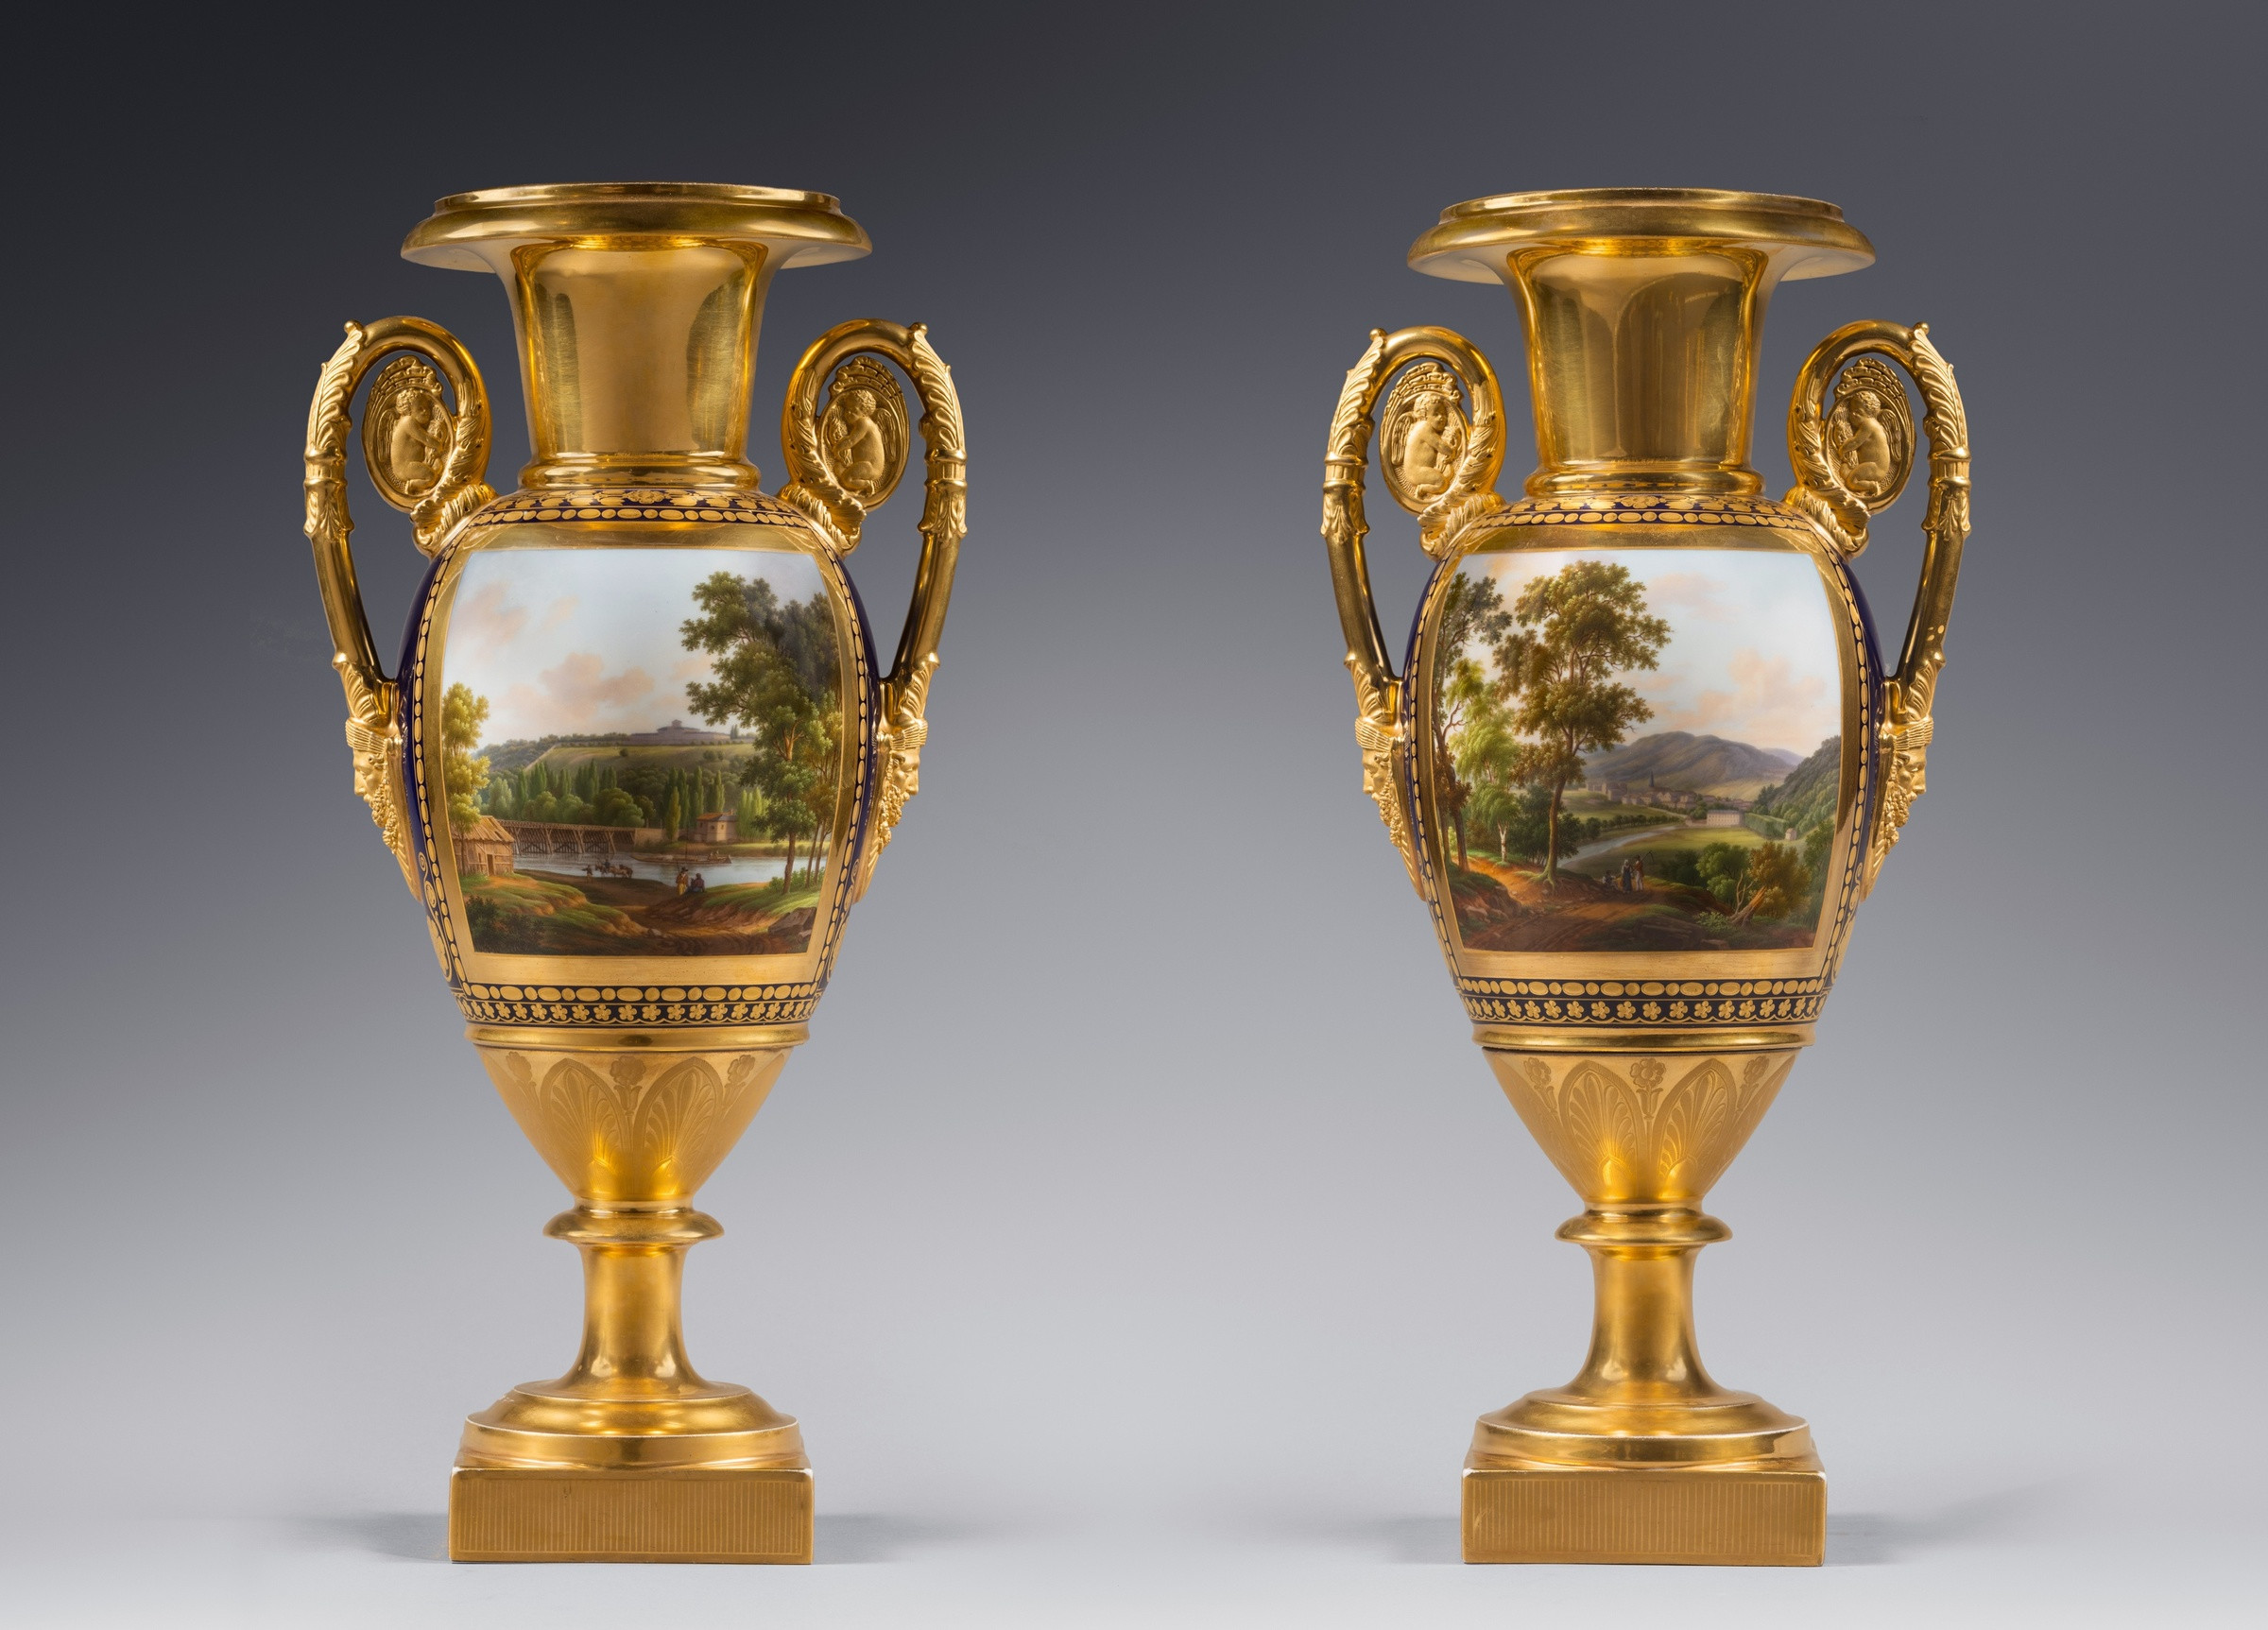 painting glass vases of nast fra¨res manufactory attributed to a pair of restauration two regarding a pair of restauration two handled vases probably by nast fra¨res manufactory